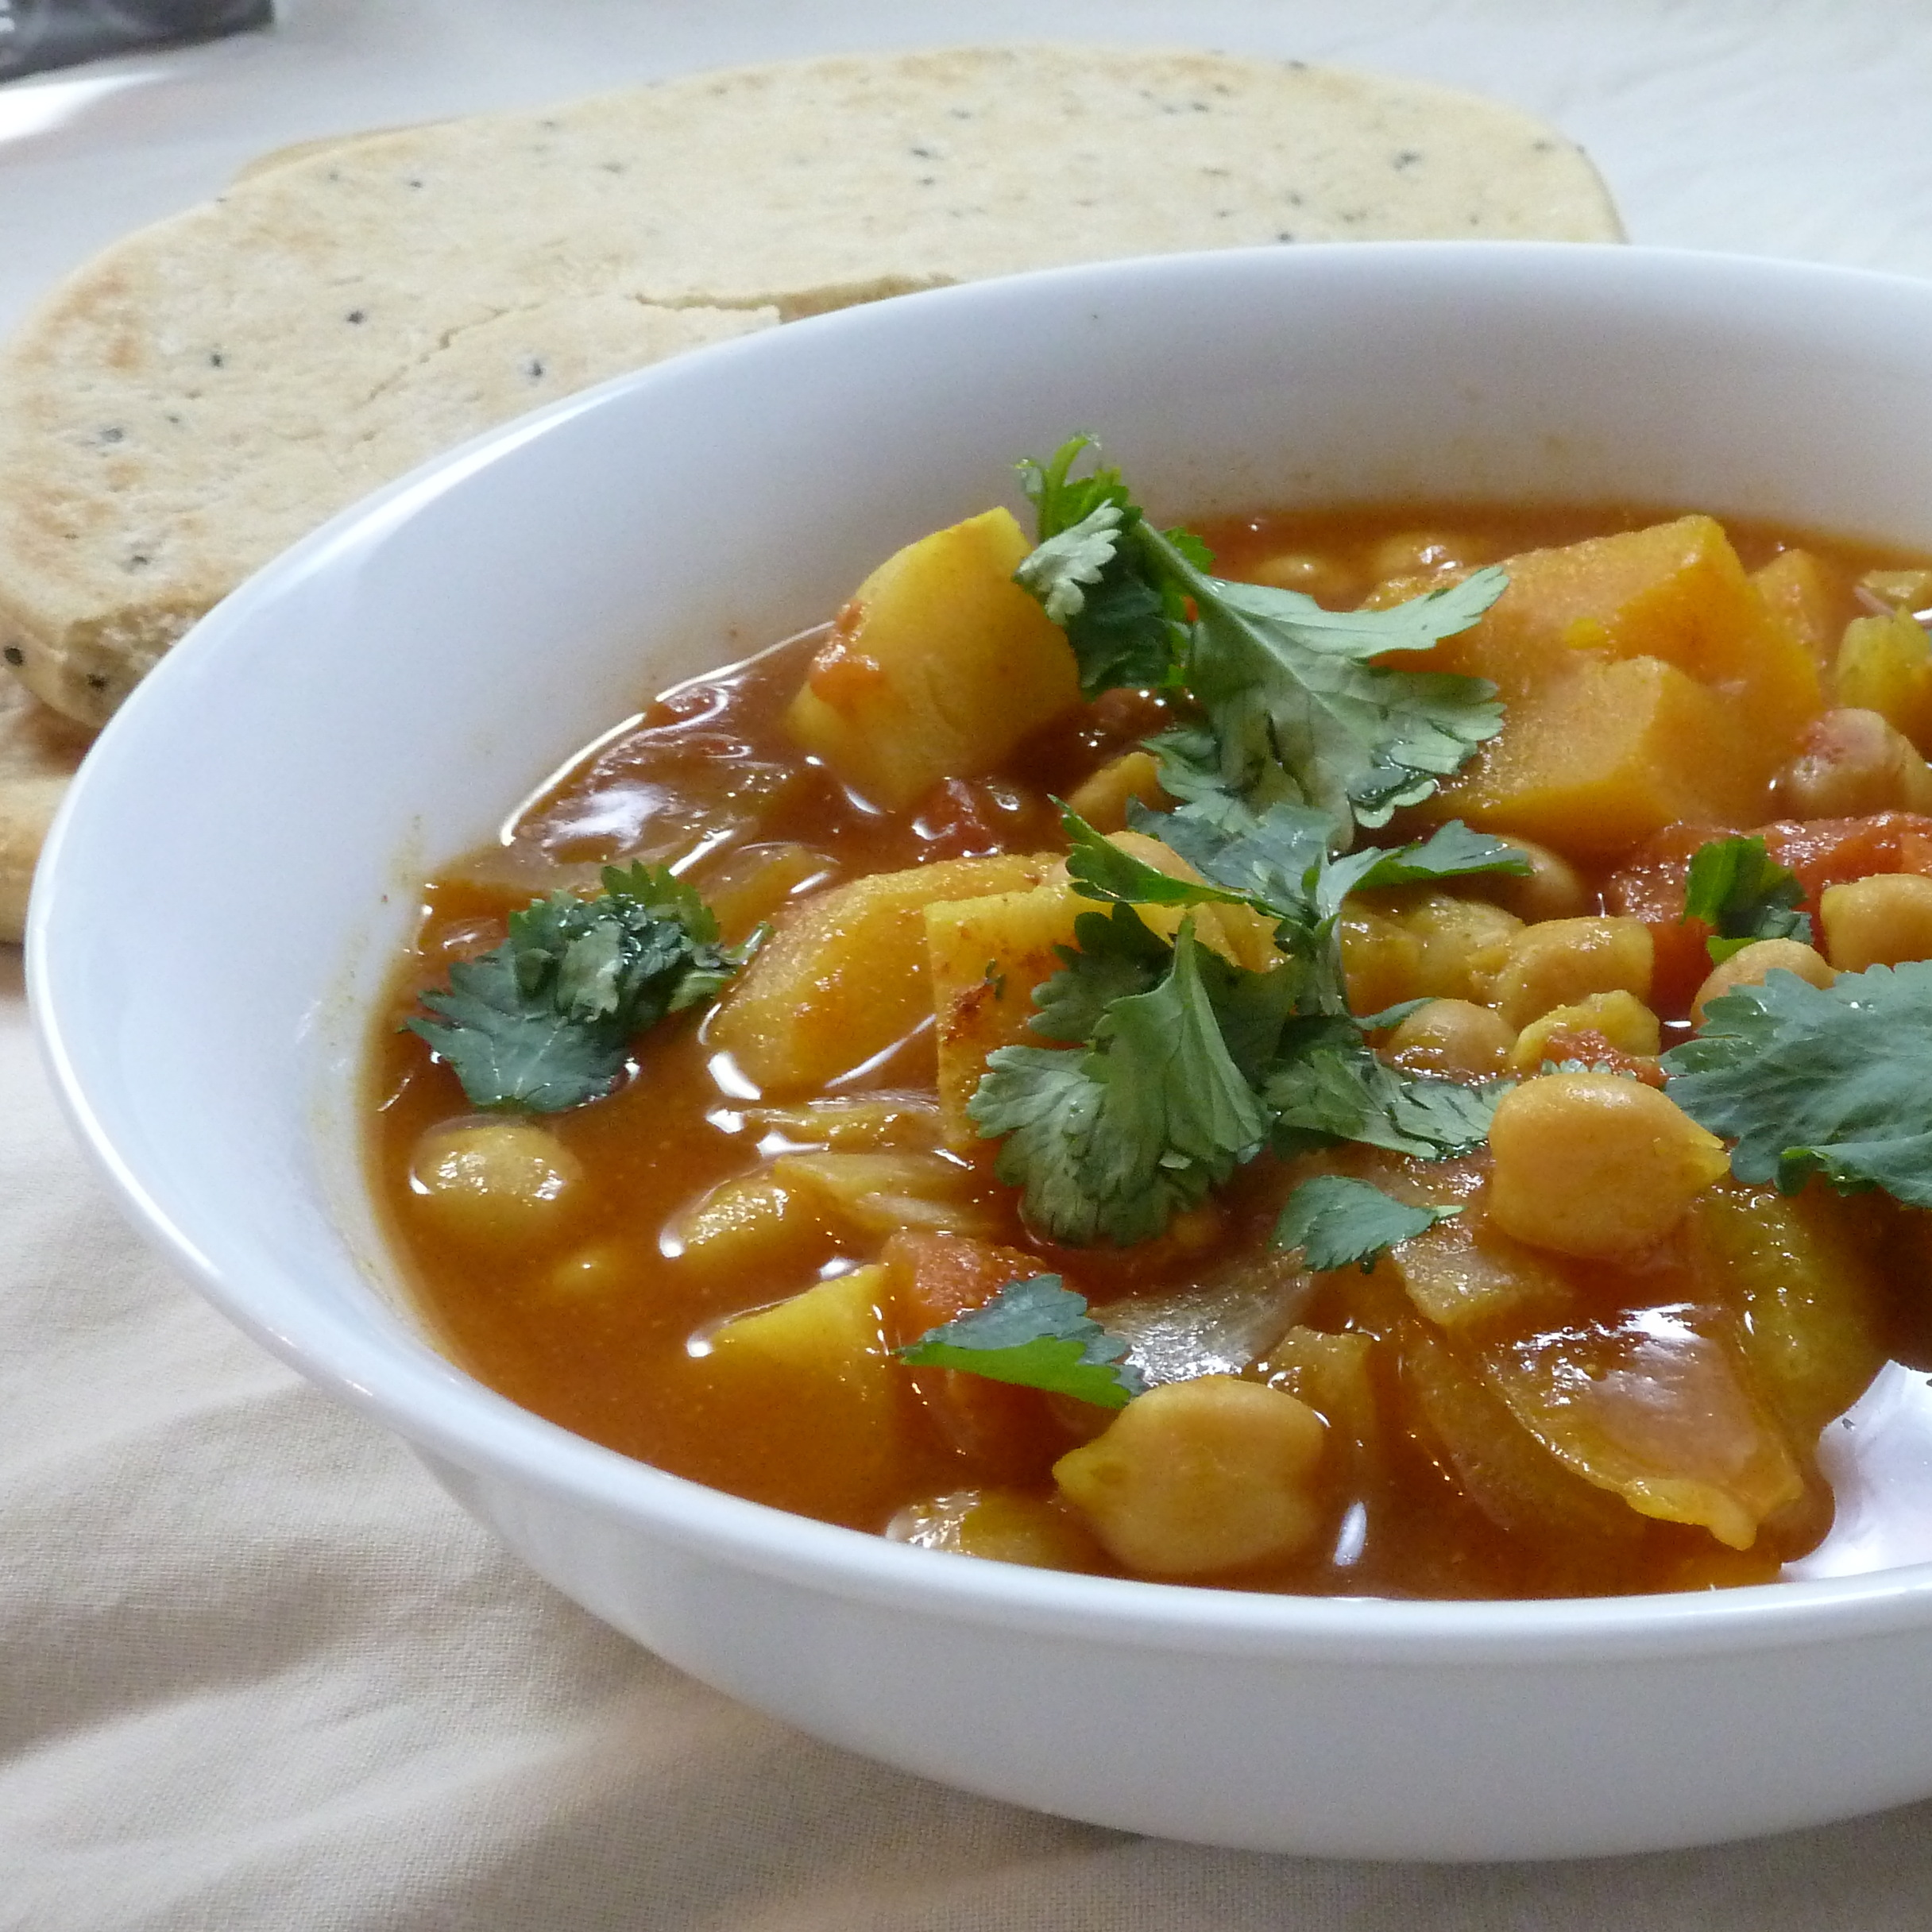 Slow cooker chickpea curry with naan from grubdujour.com